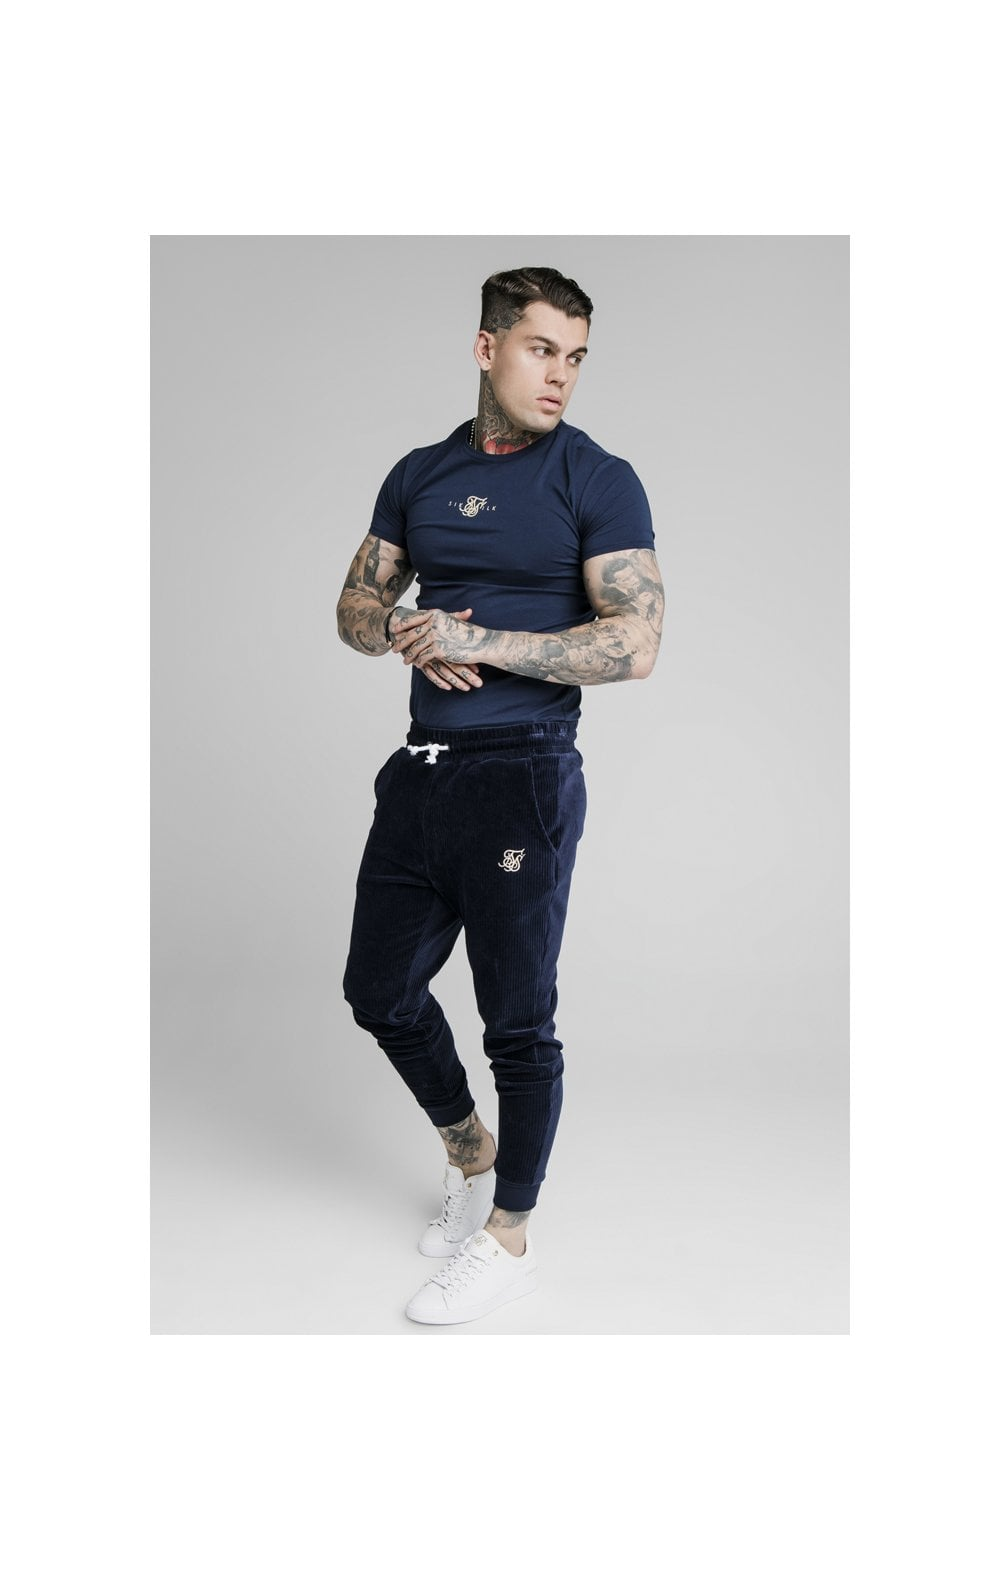 SikSilk Allure Straight Hem Gym Tee - Navy (2)